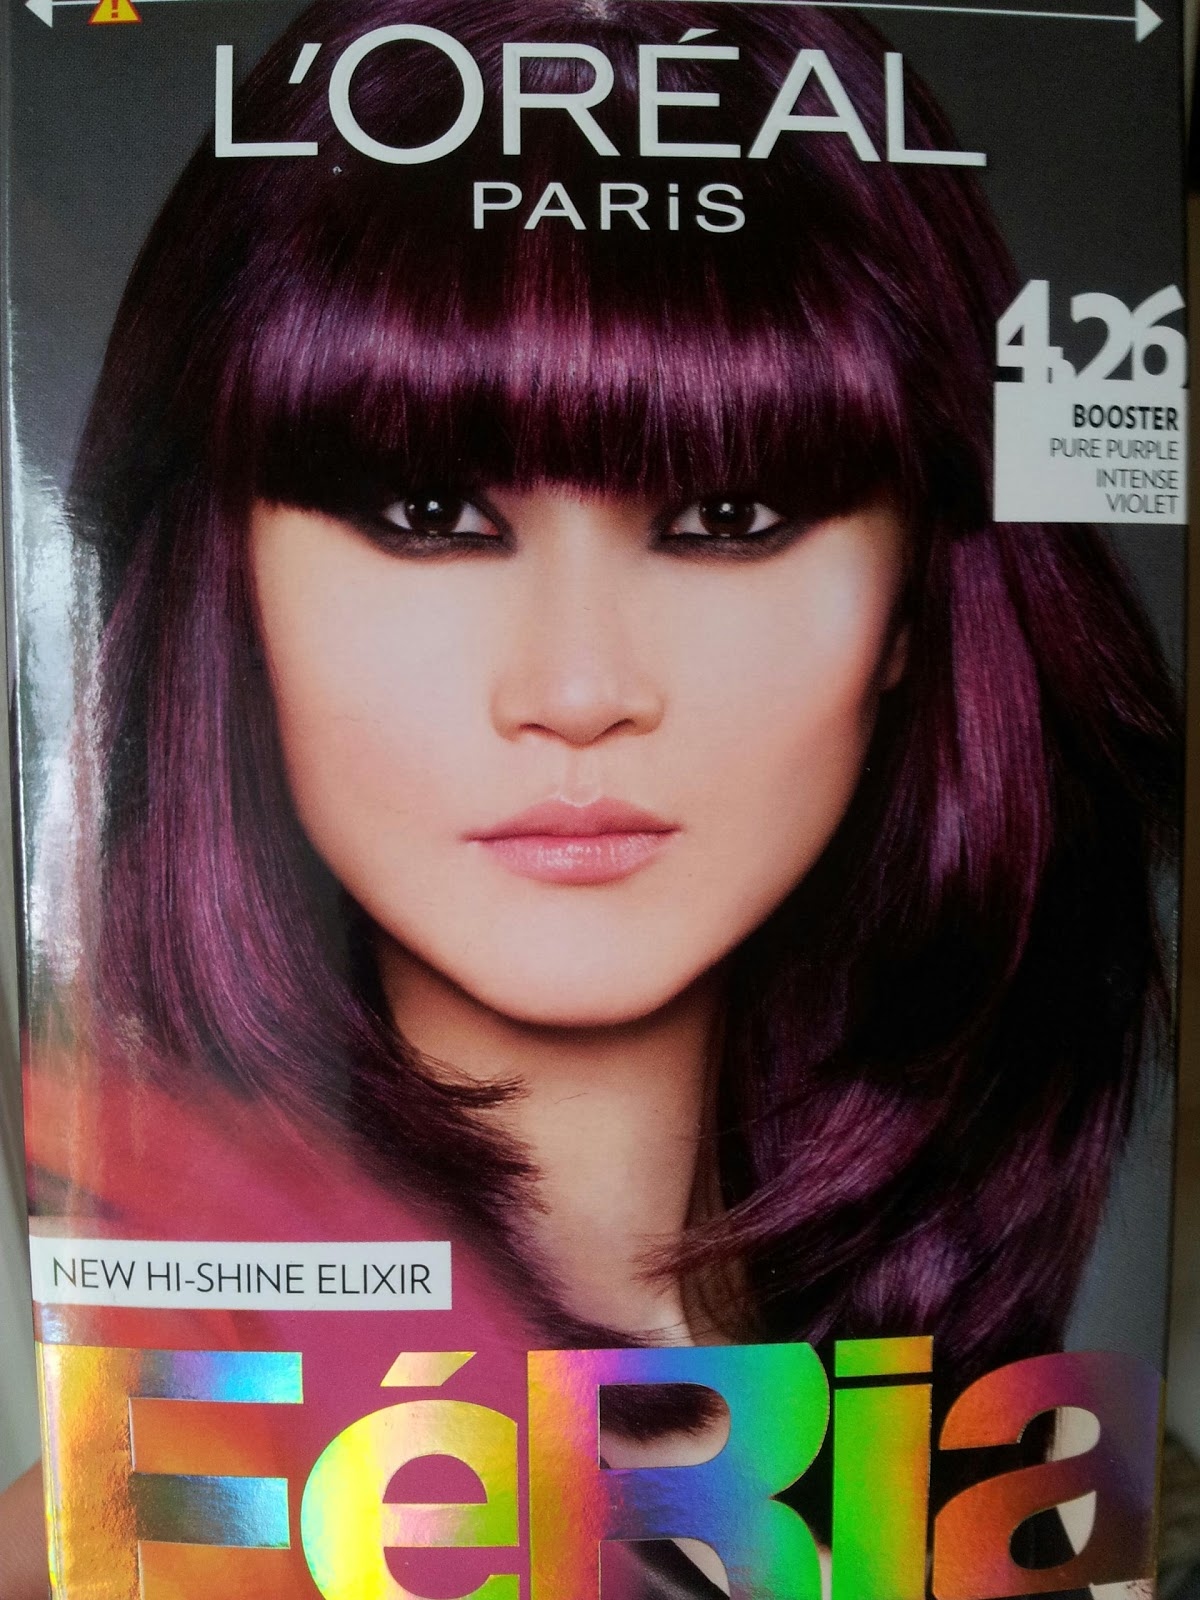 Plum Eggplant Hair Color Like to have purple hair,